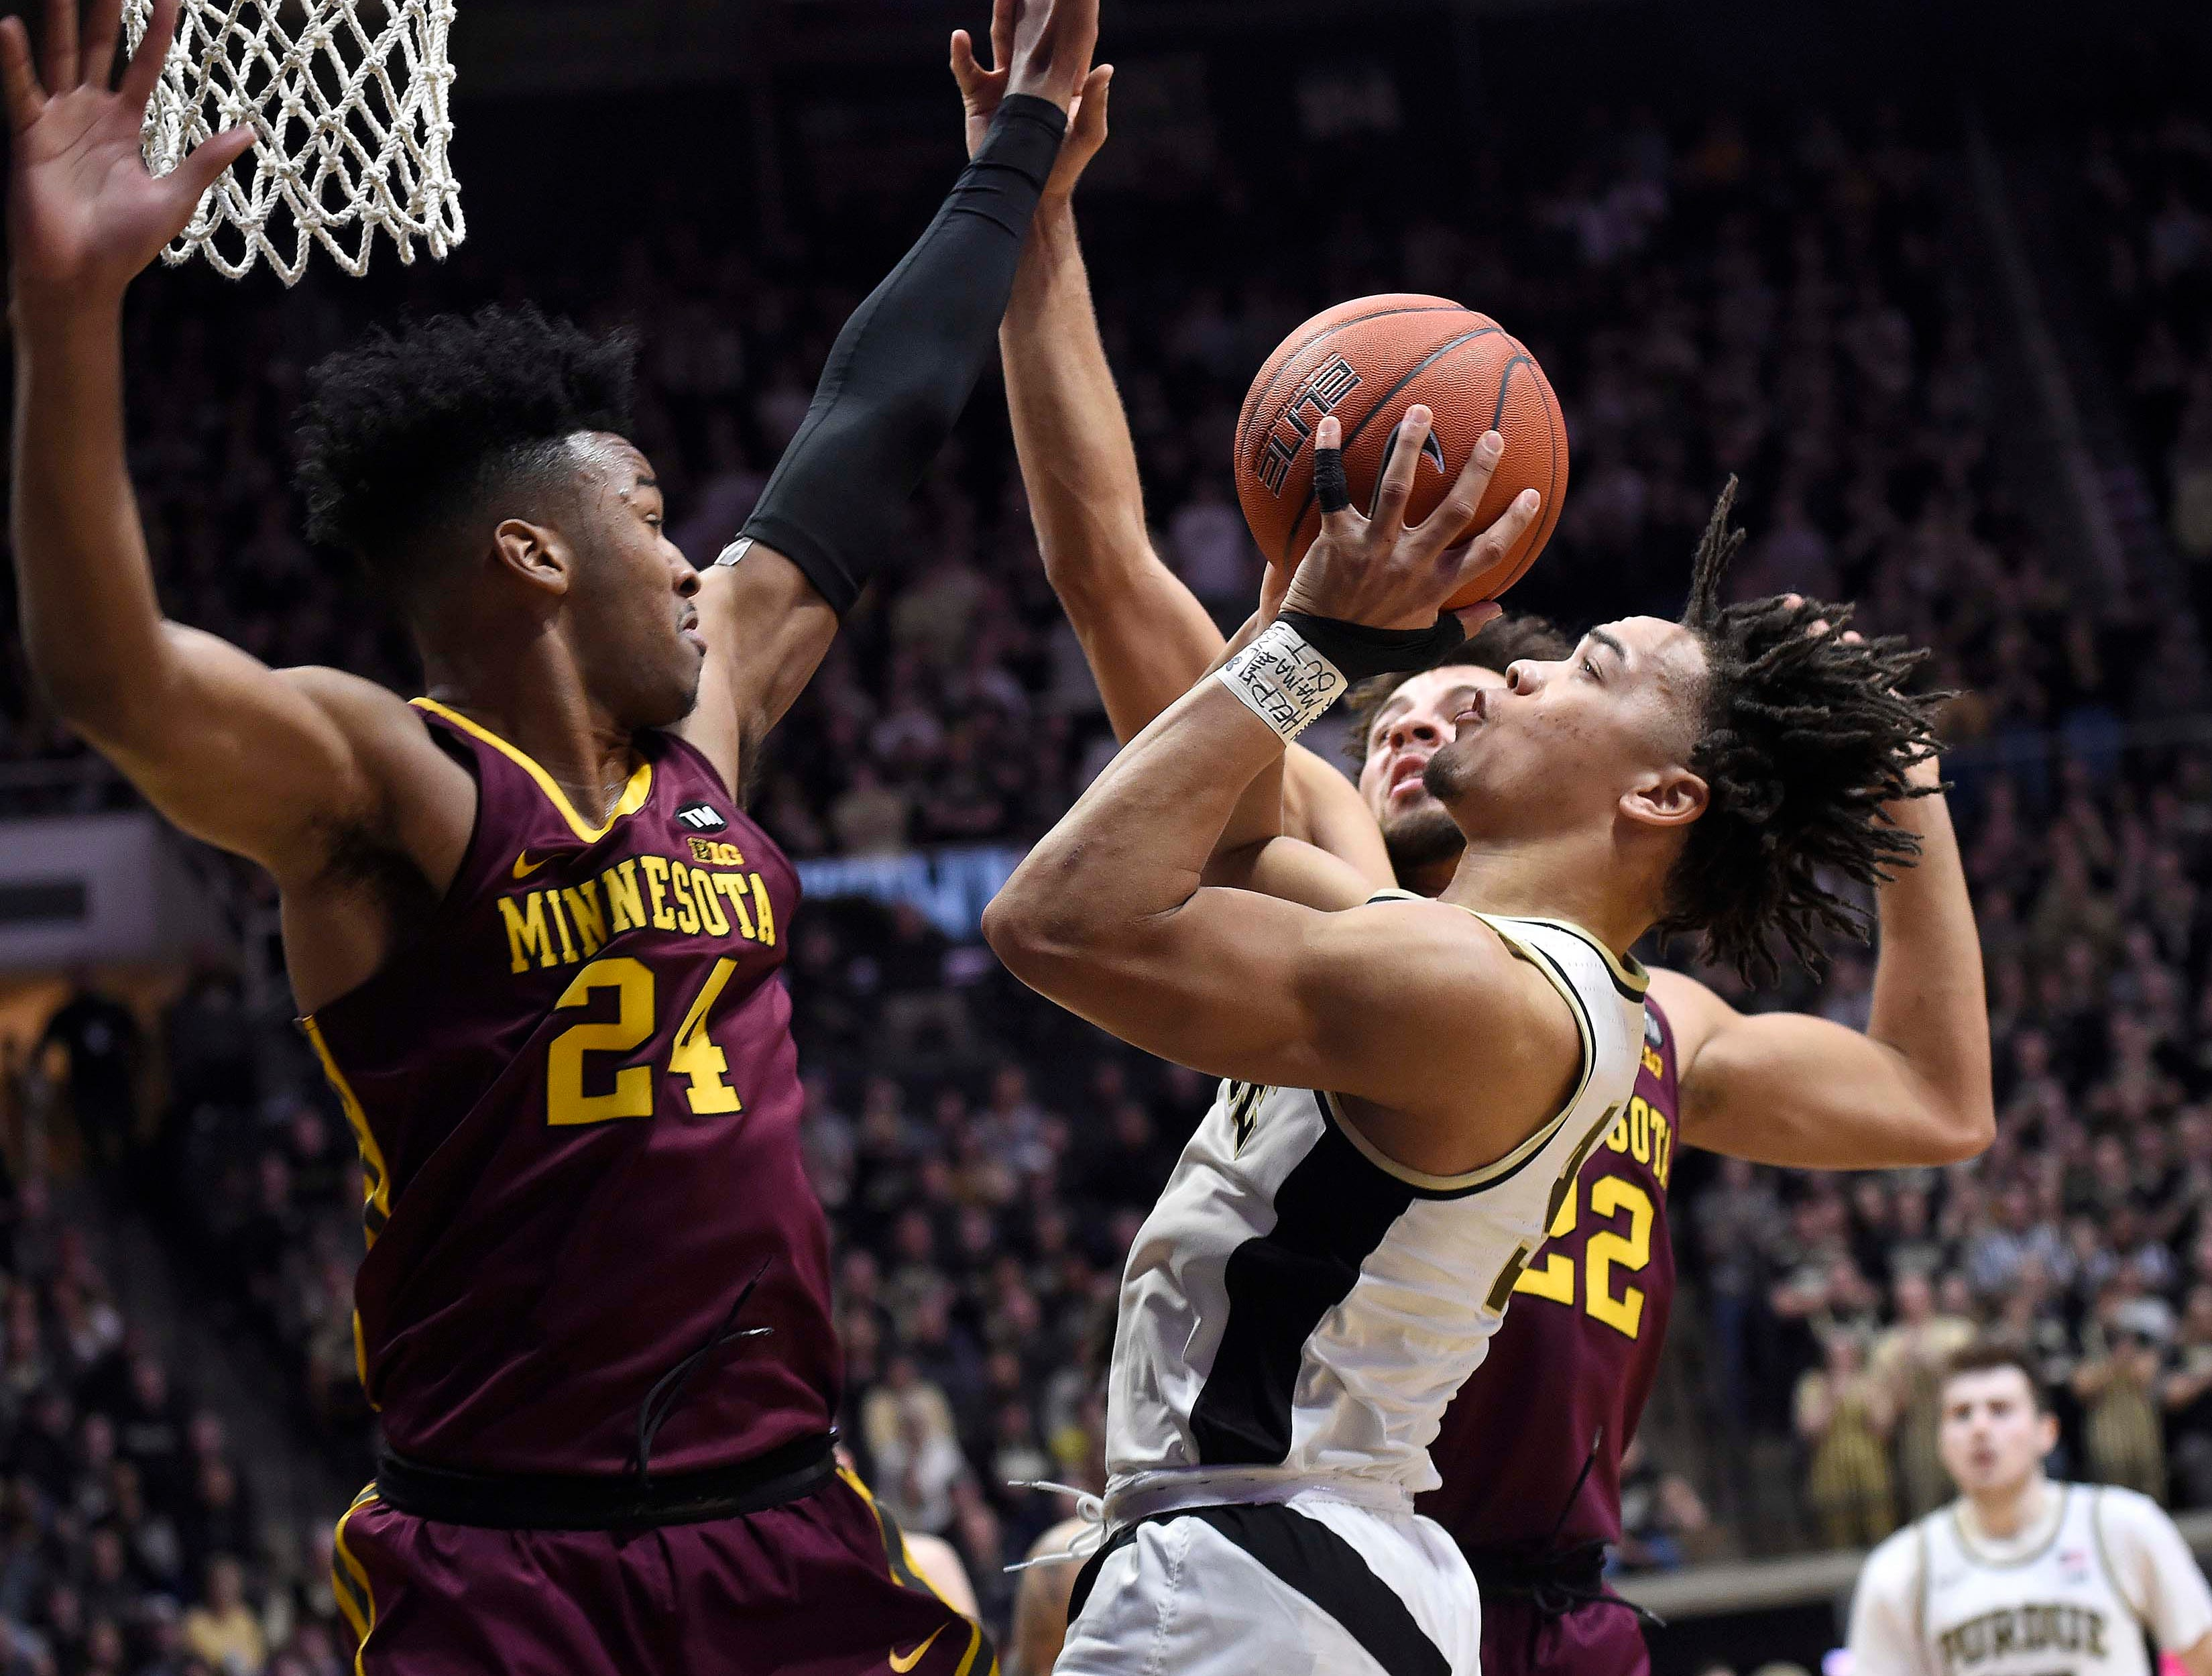 Feb 3, 2019; West Lafayette, IN, USA; Purdue Boilermakers guard Carsen Edwards (3) shoots through the defense of Minnesota Golden Gophers forward Eric Curry (24) and guard Gabe Kalscheur (22) n the 2nd half at Mackey Arena. Mandatory Credit: Sandra Dukes-USA TODAY Sports